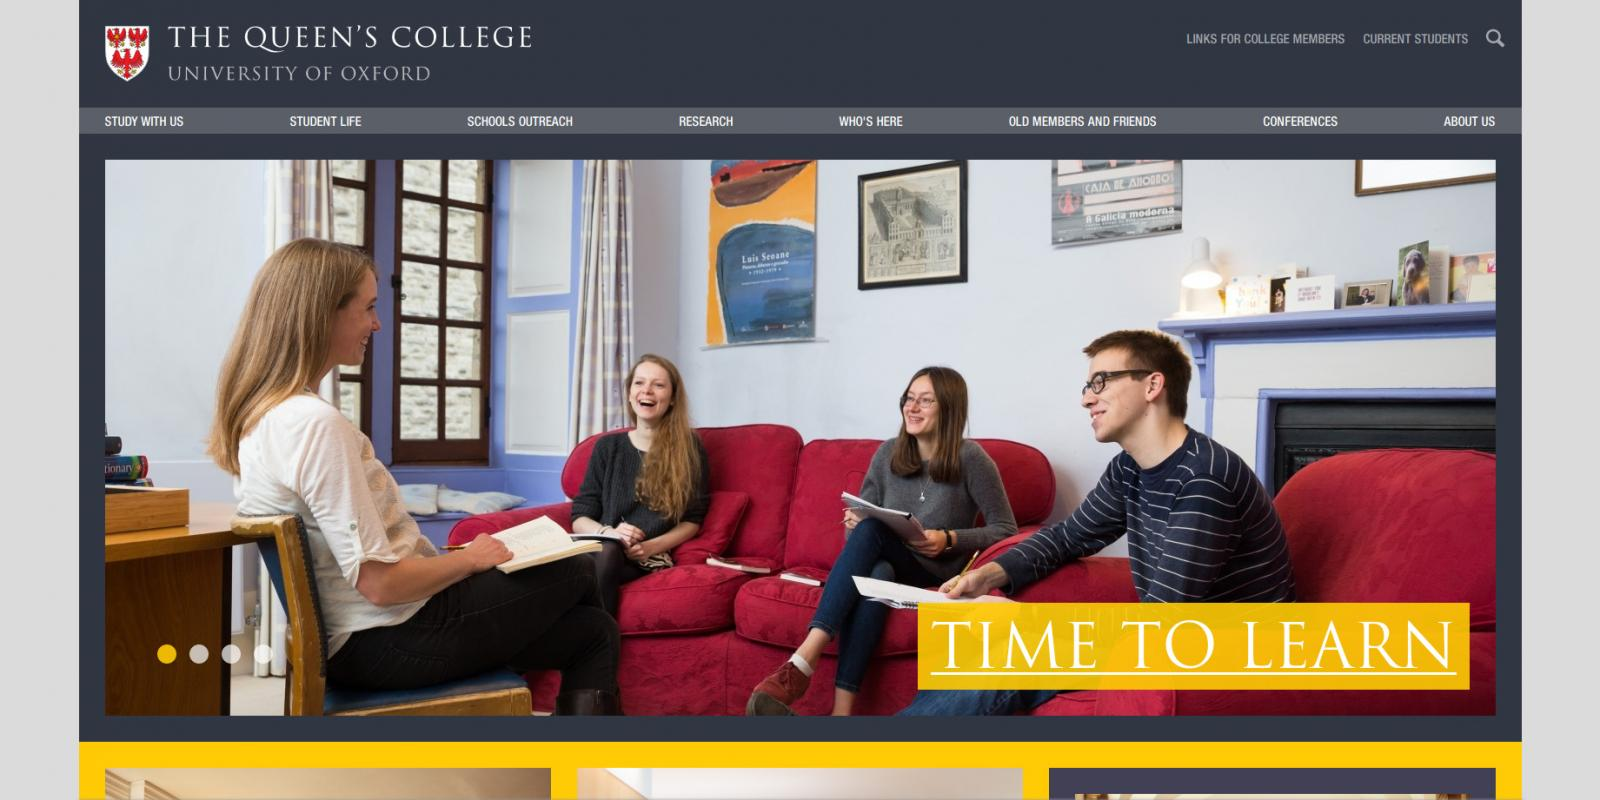 The Queen's College, University of Oxford - website homepage